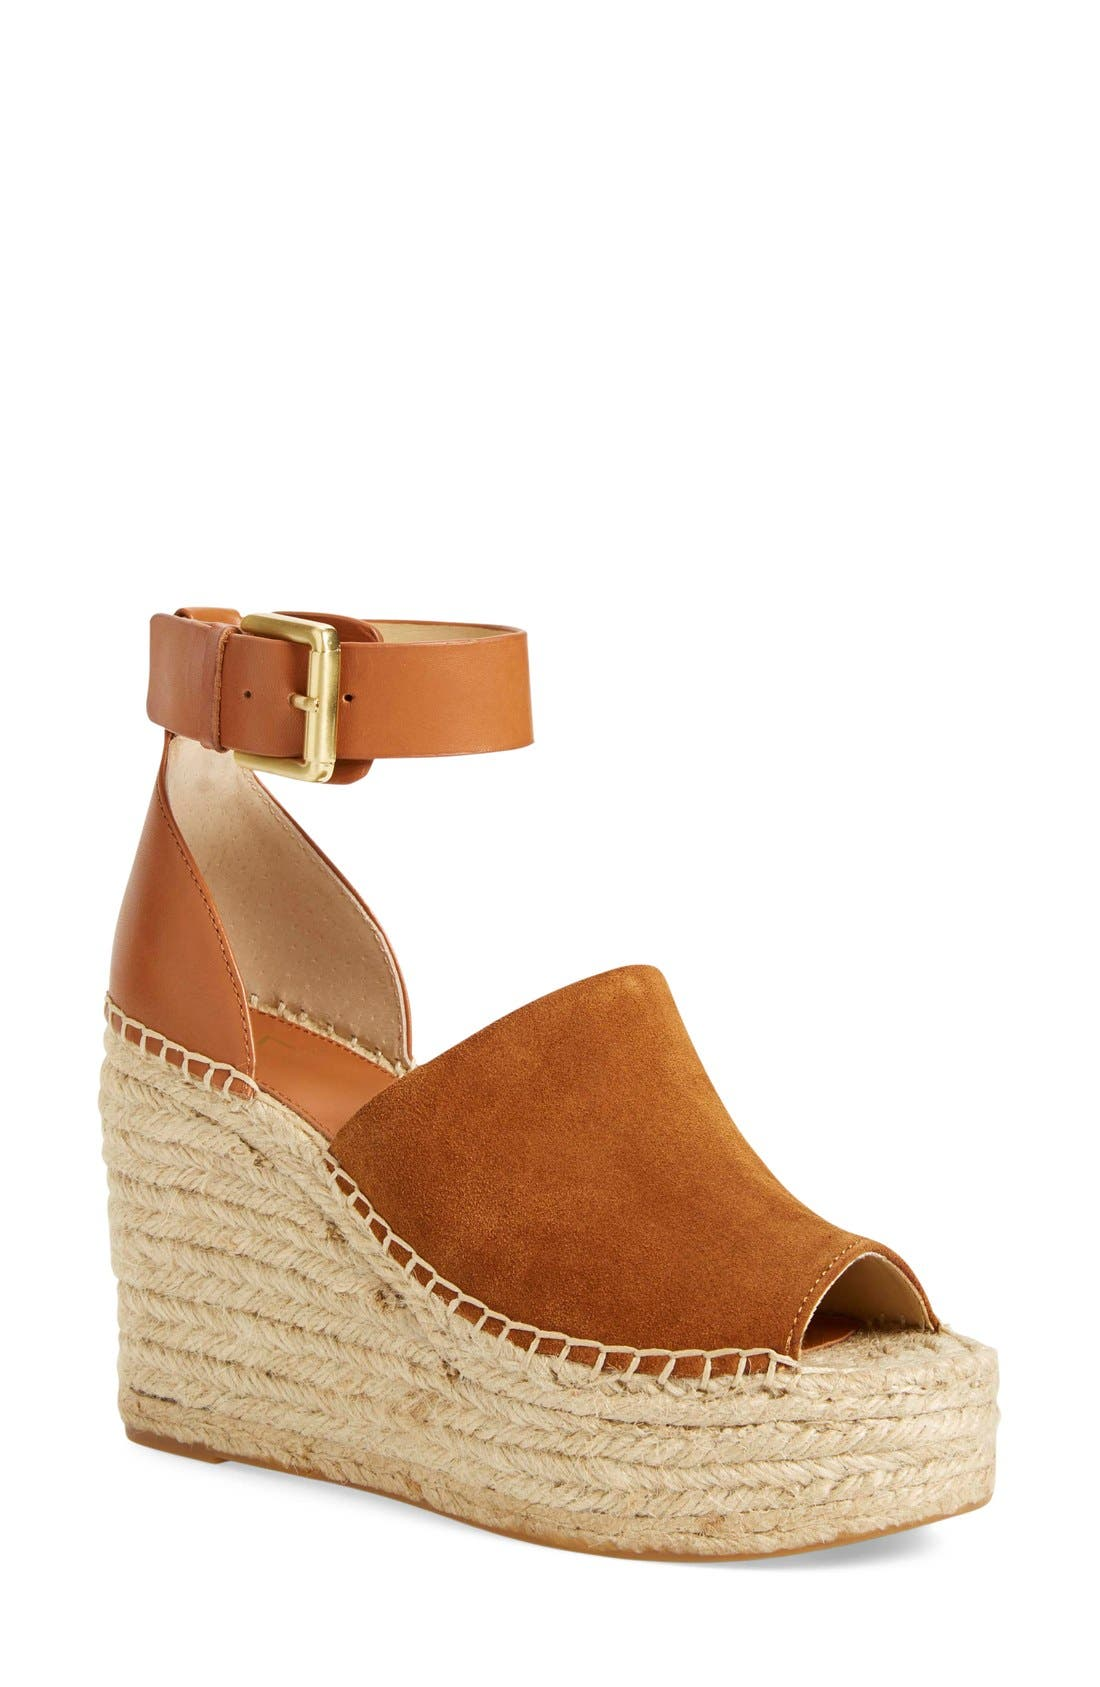 Alternate Image 1 Selected - Marc Fisher LTD 'Adalyn' Espadrille Wedge Sandal (Women)